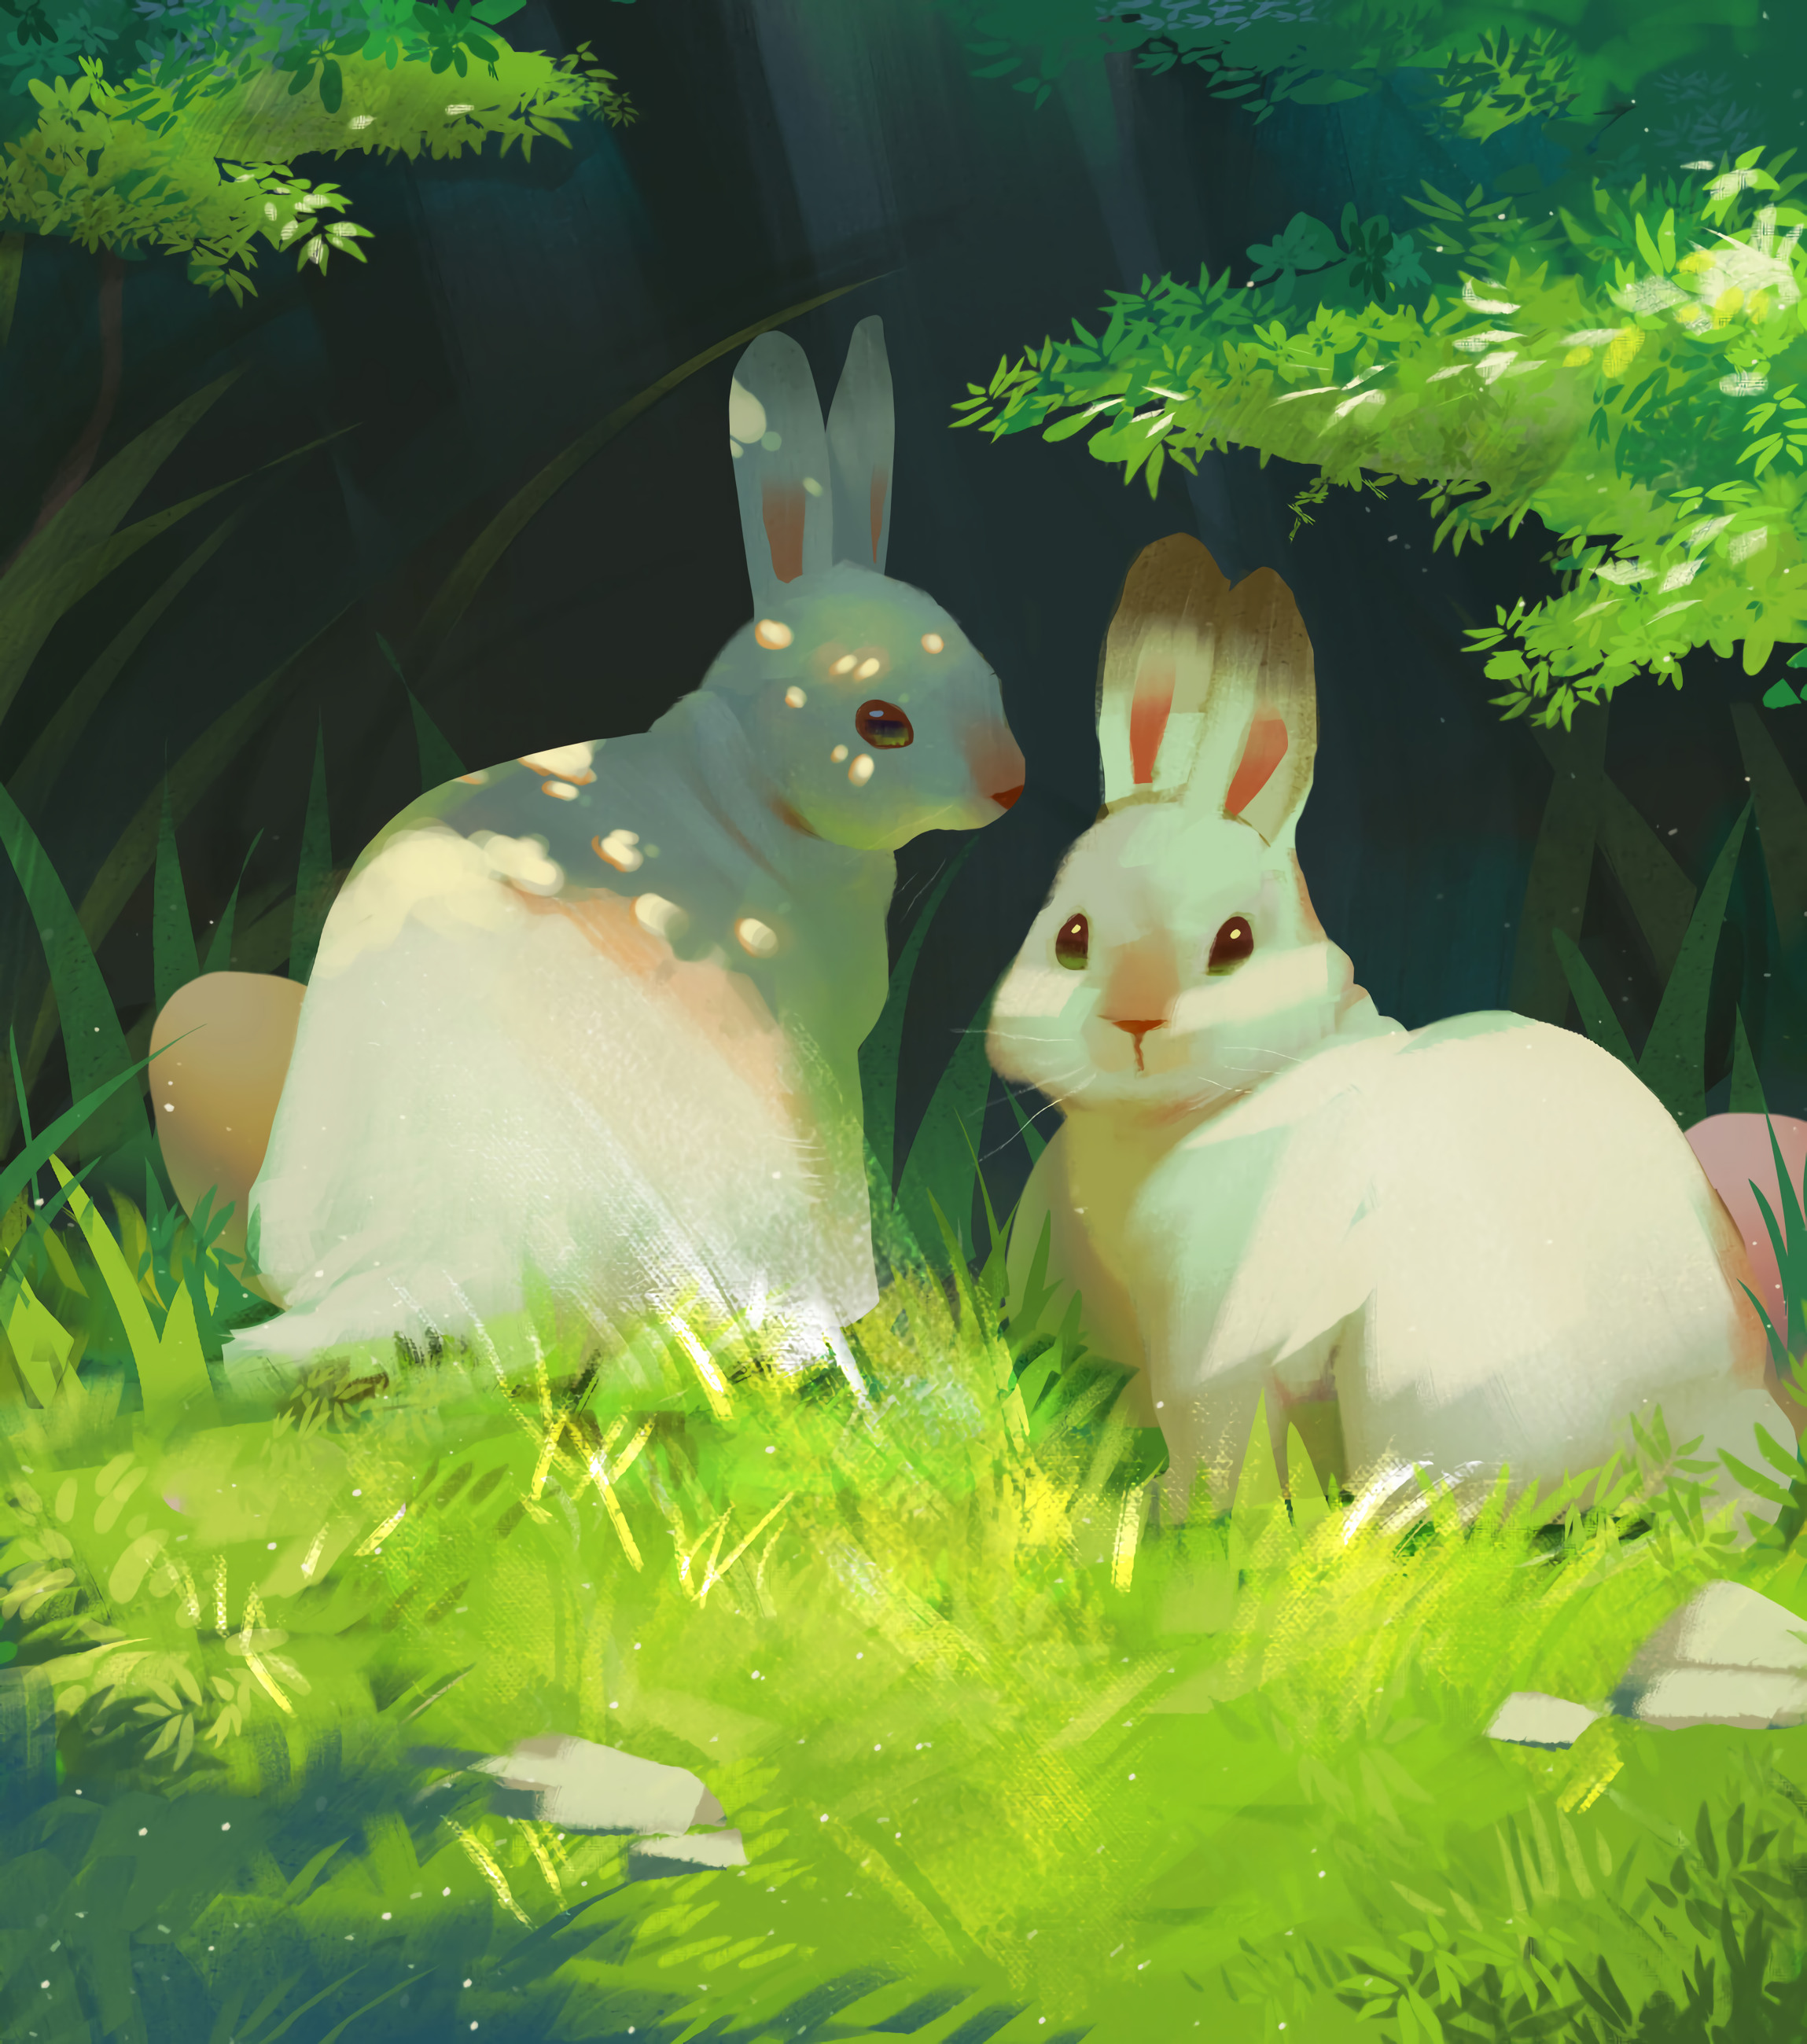 54837 download wallpaper Rabbits, Grass, Nice, Sweetheart, Art, Animation screensavers and pictures for free